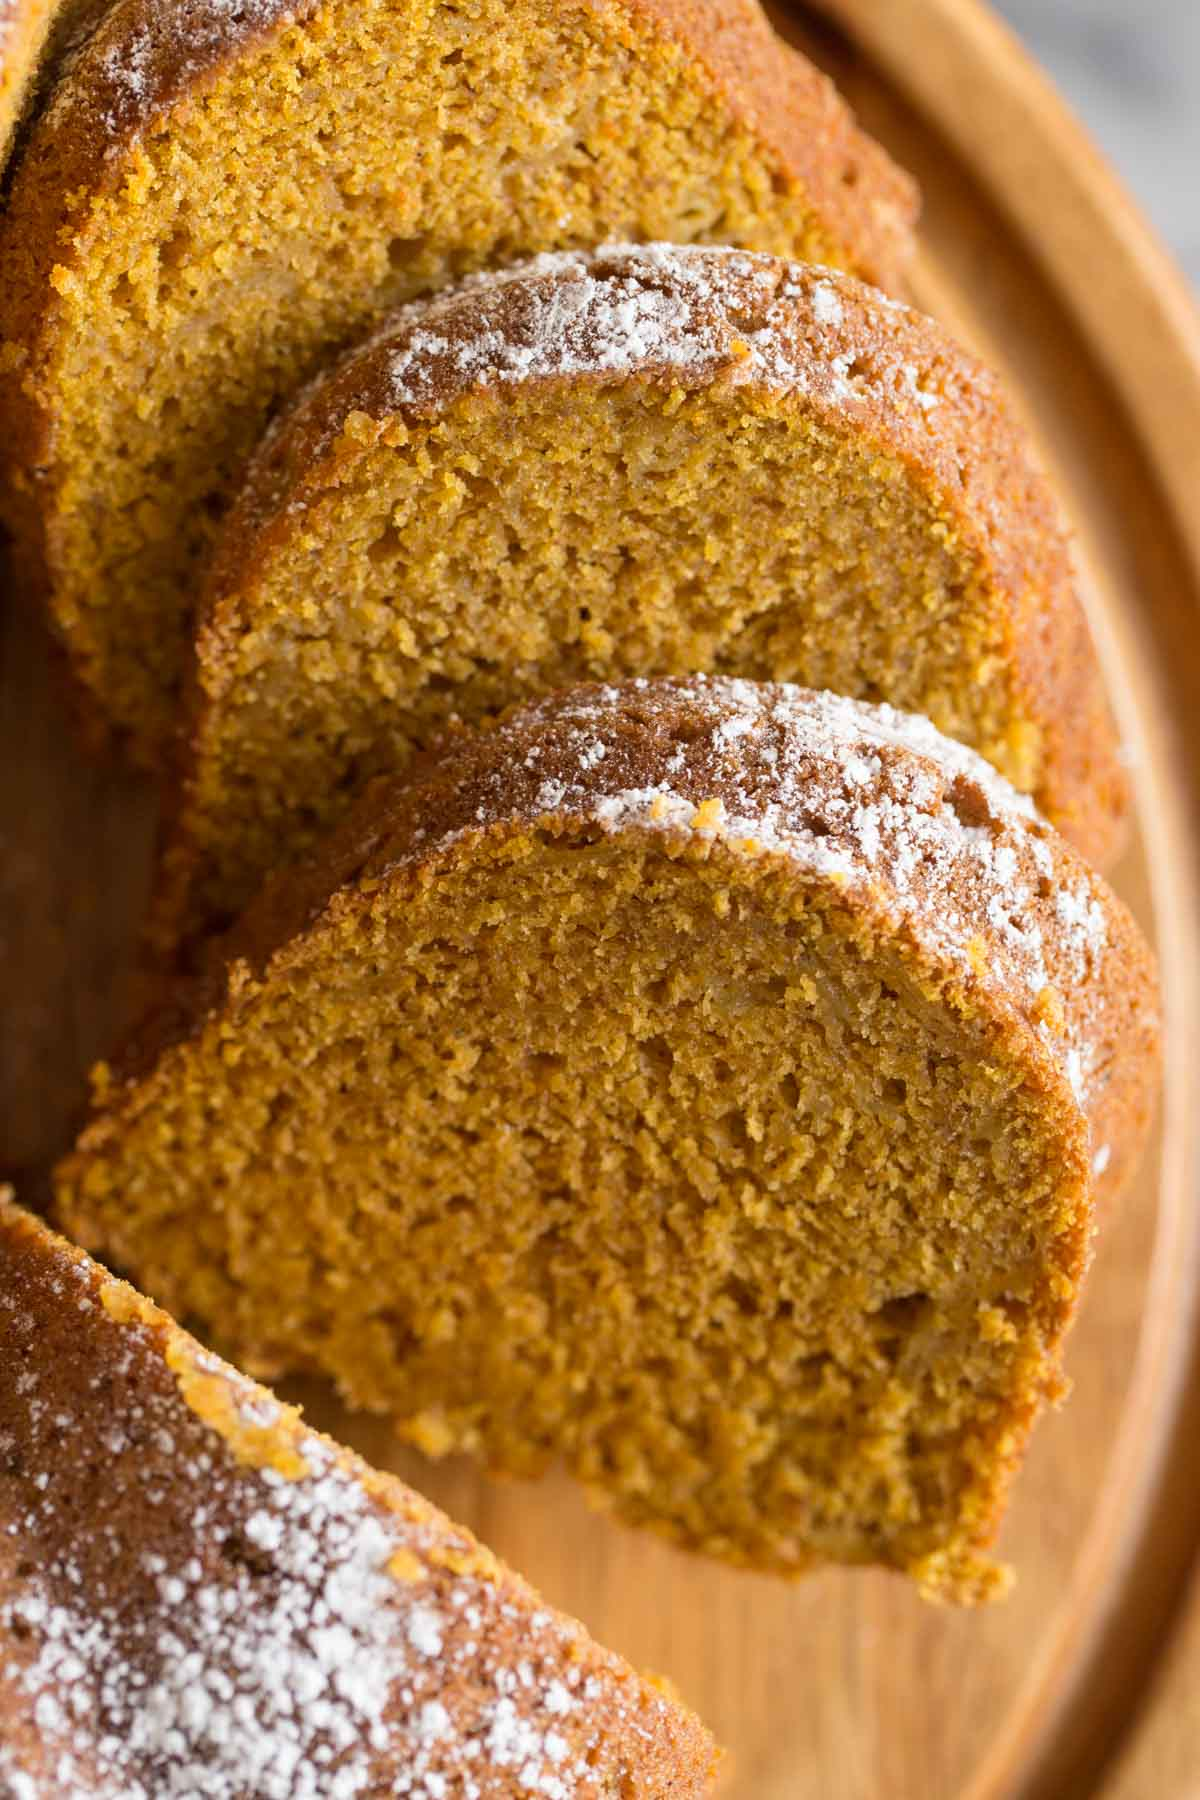 Close up of slices of Apple Pumpkin cake to show moist, tender crumb.